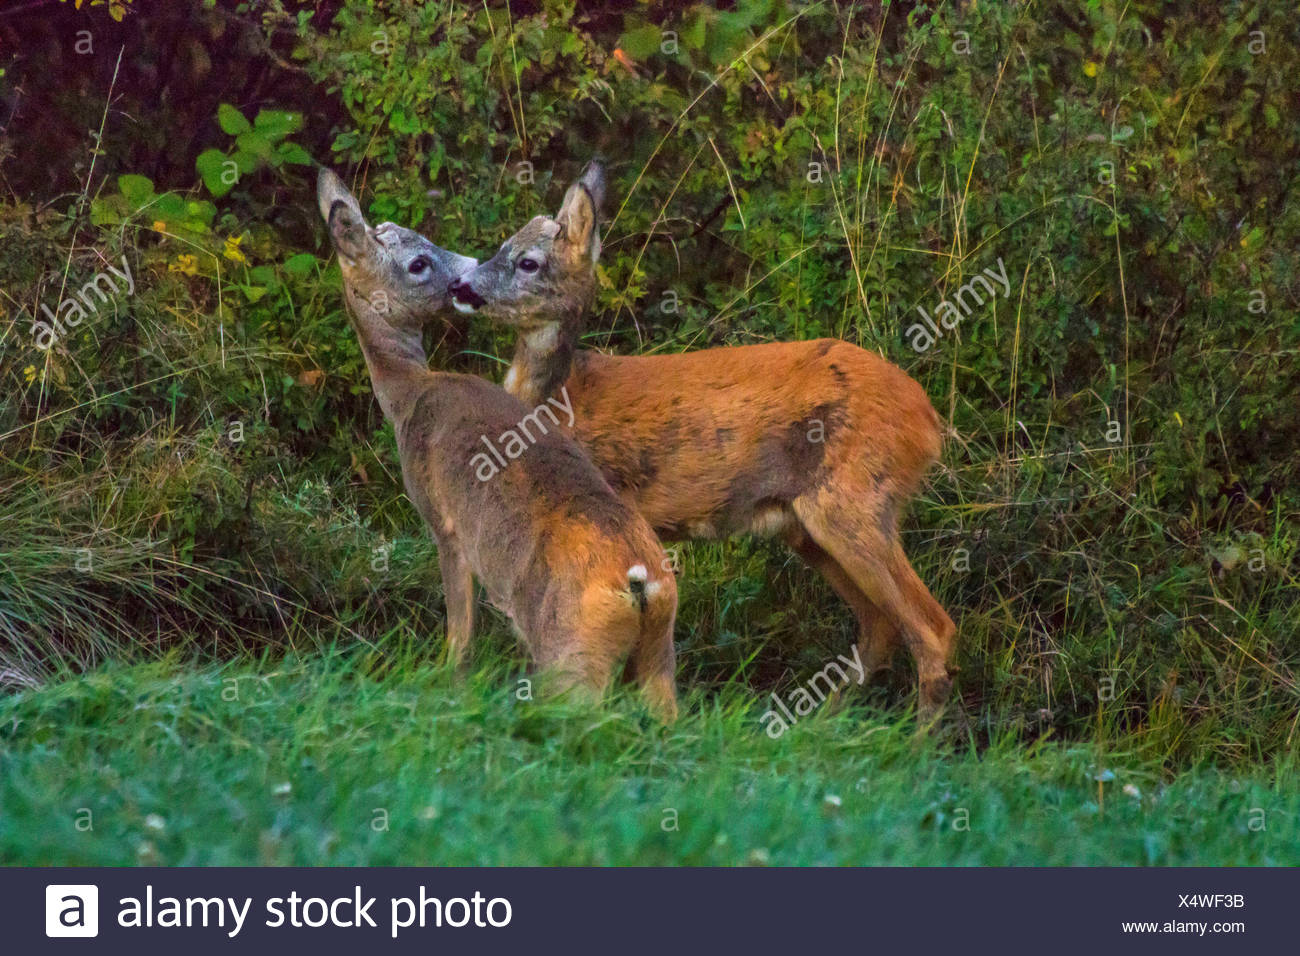 roe deer (Capreolus capreolus), two juvenile roe deers stand in a meadow at forest edge sniffing, Switzerland, Sankt Gallen - Stock Image